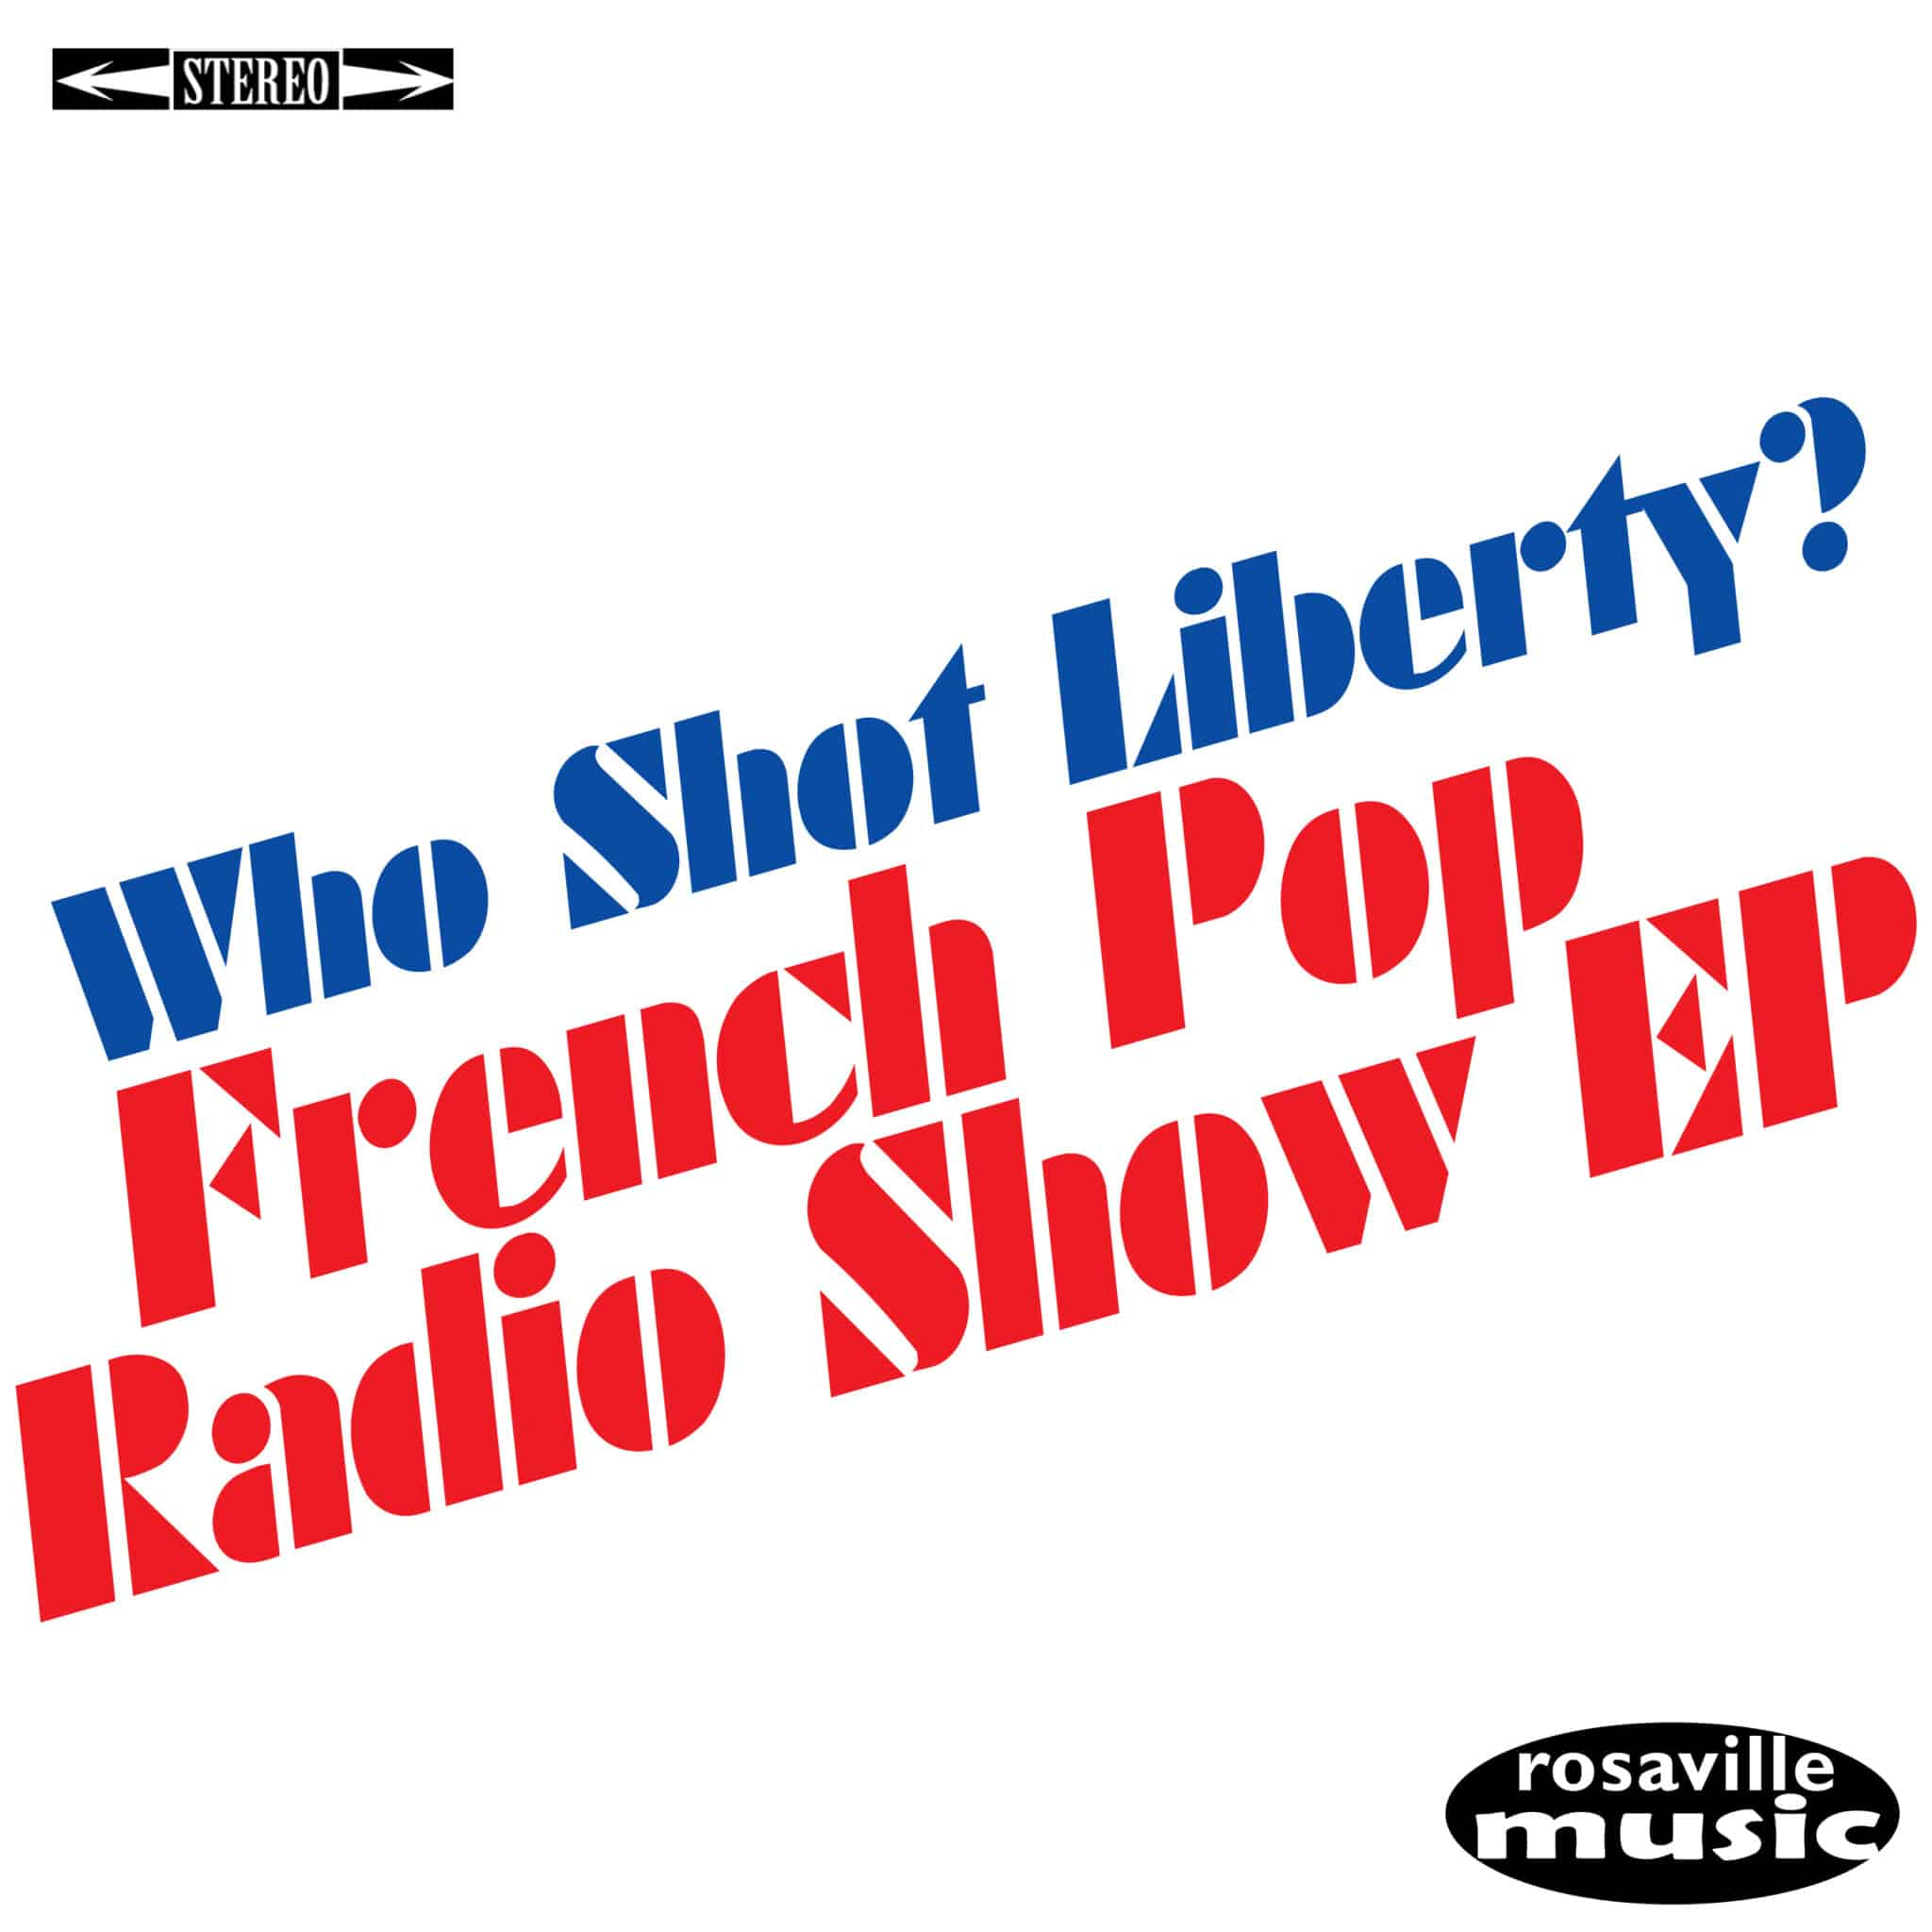 Who Shot Liberty? French Pop Collaborative Project